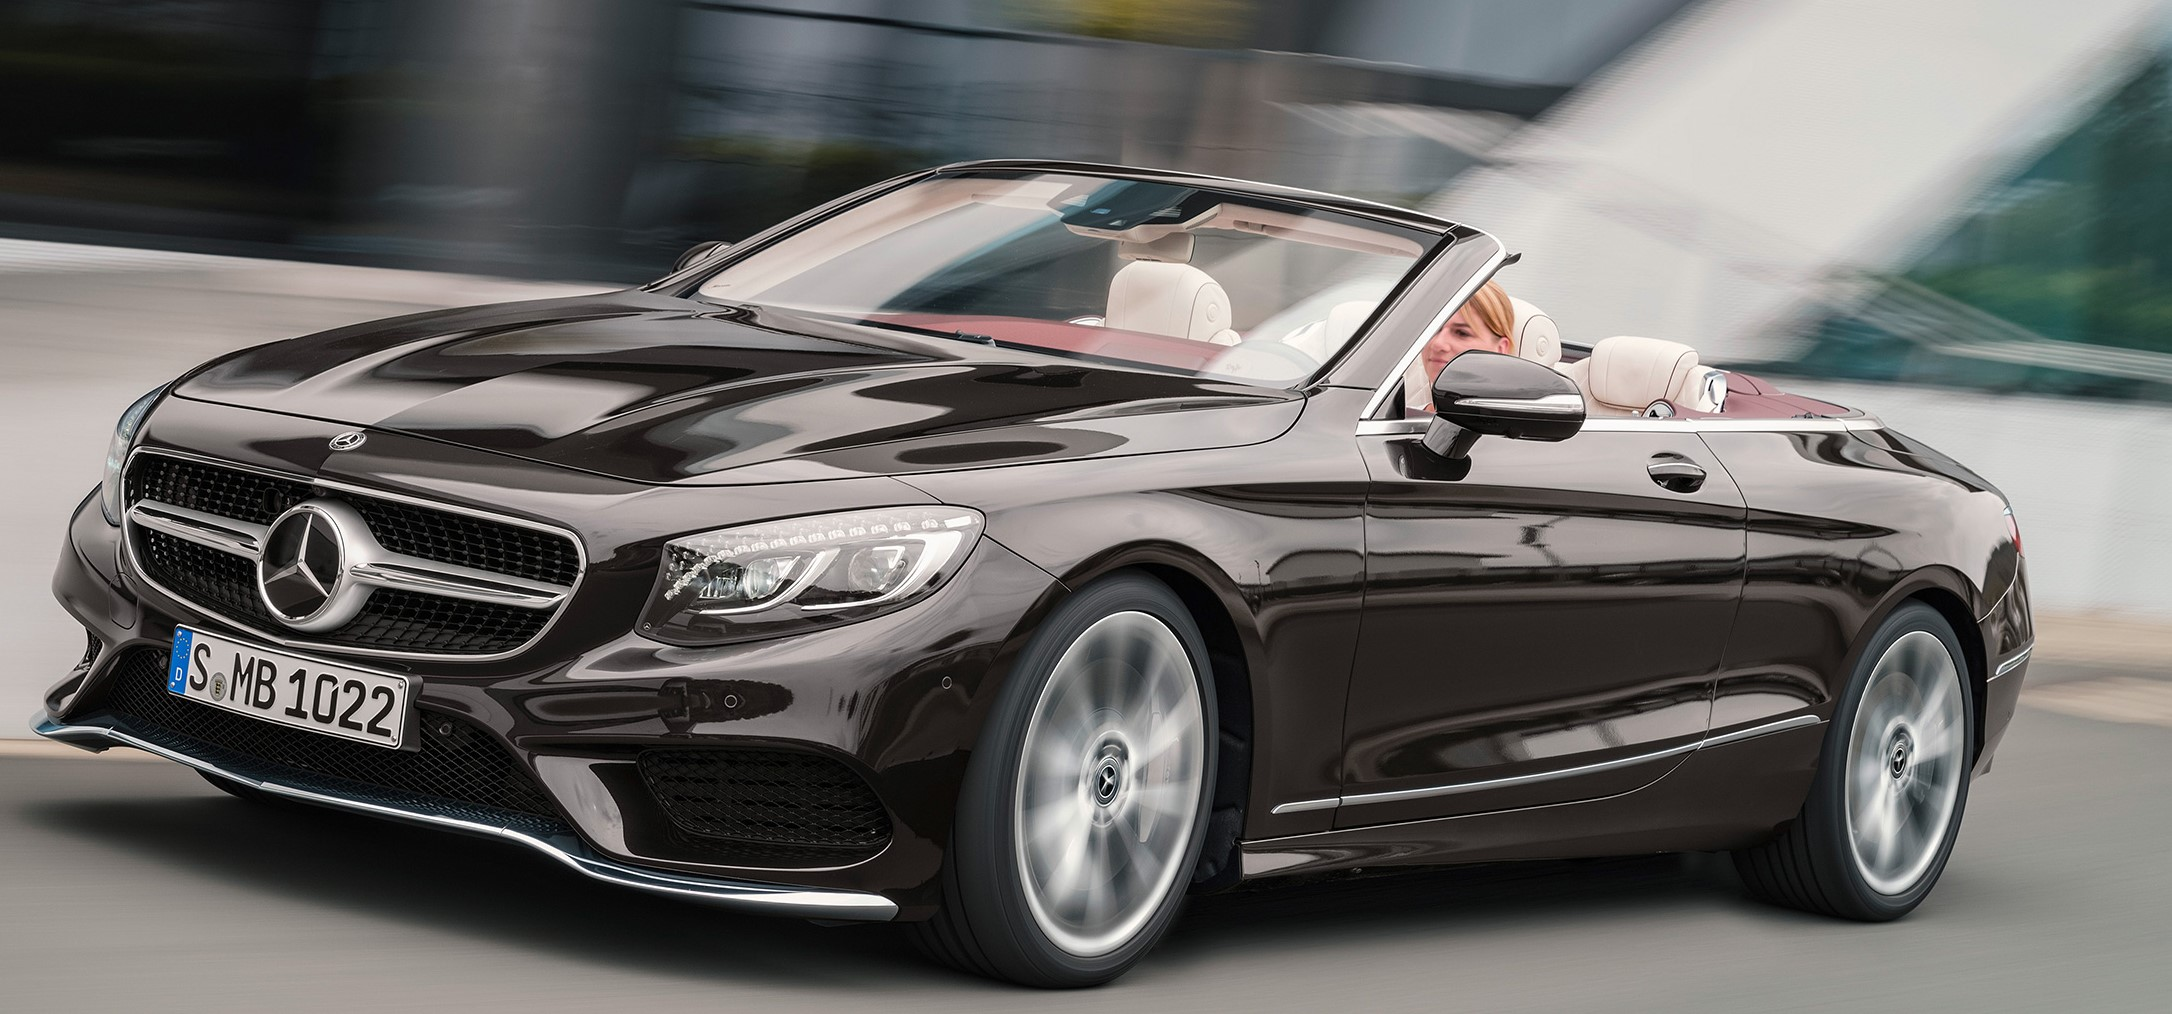 AMG S-CLASS CABRIOLET